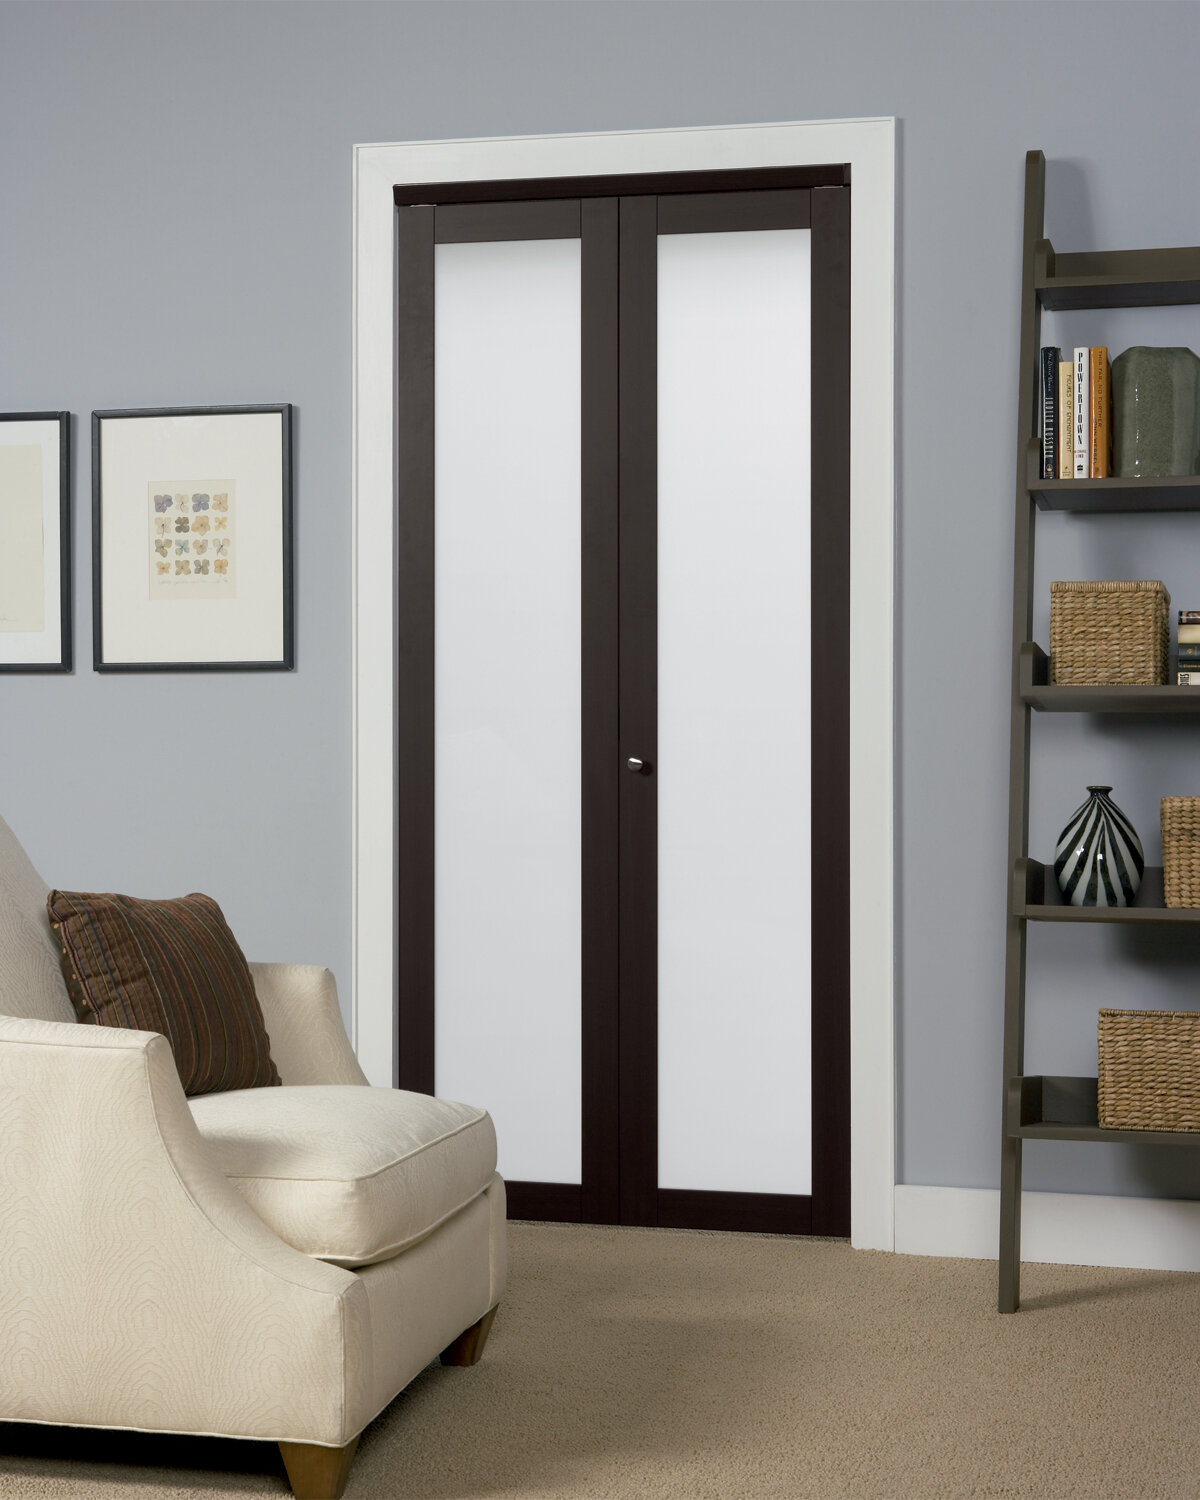 Erias Home Designs Wood Baldarassario Bi Fold Doors With Hardware